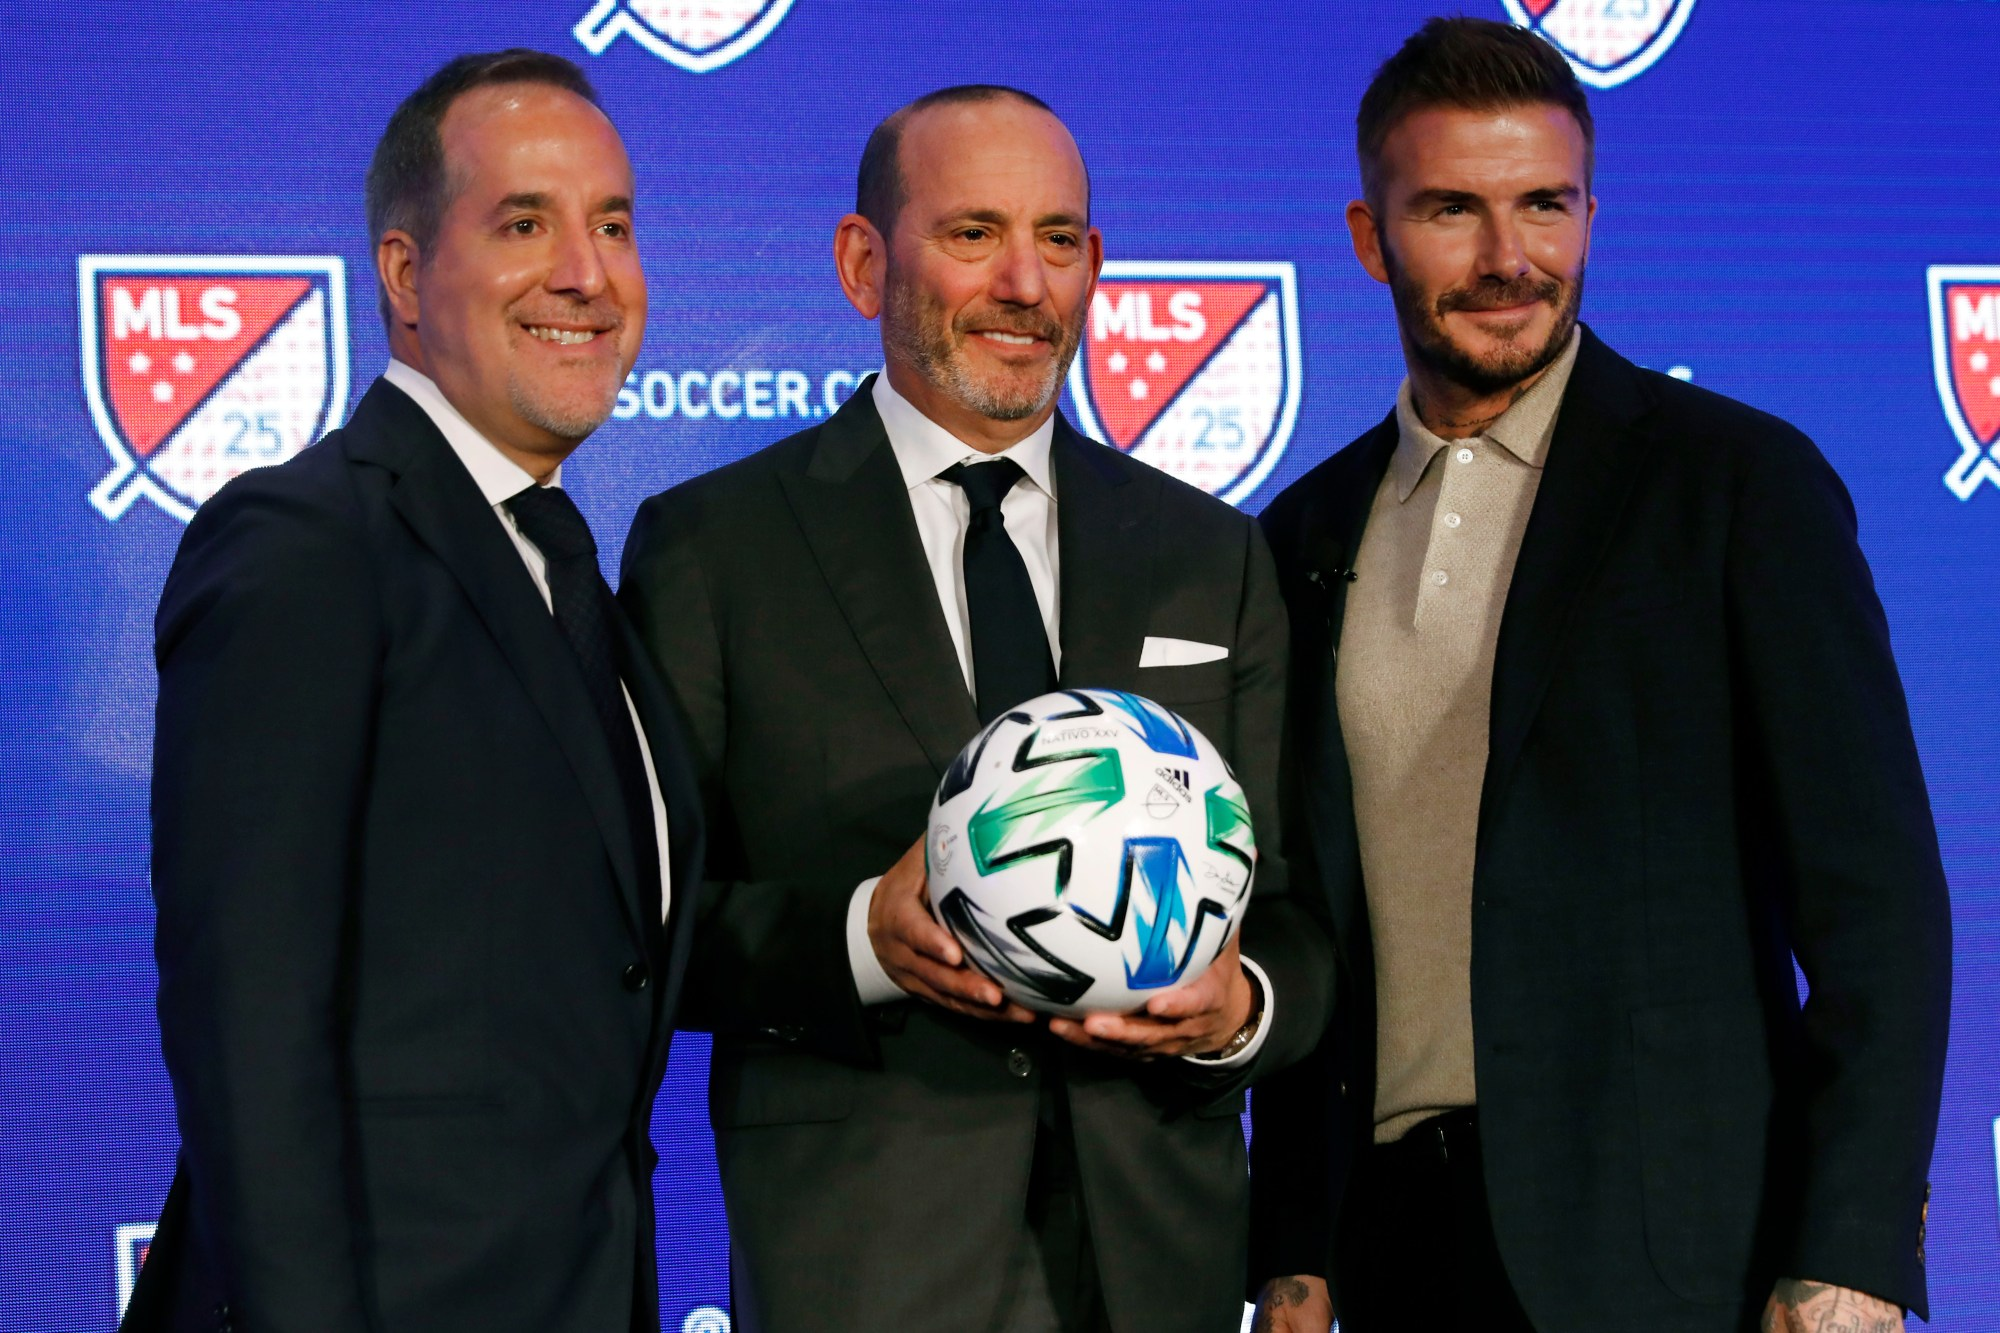 Jorge Mas, Don Garber, David Beckham